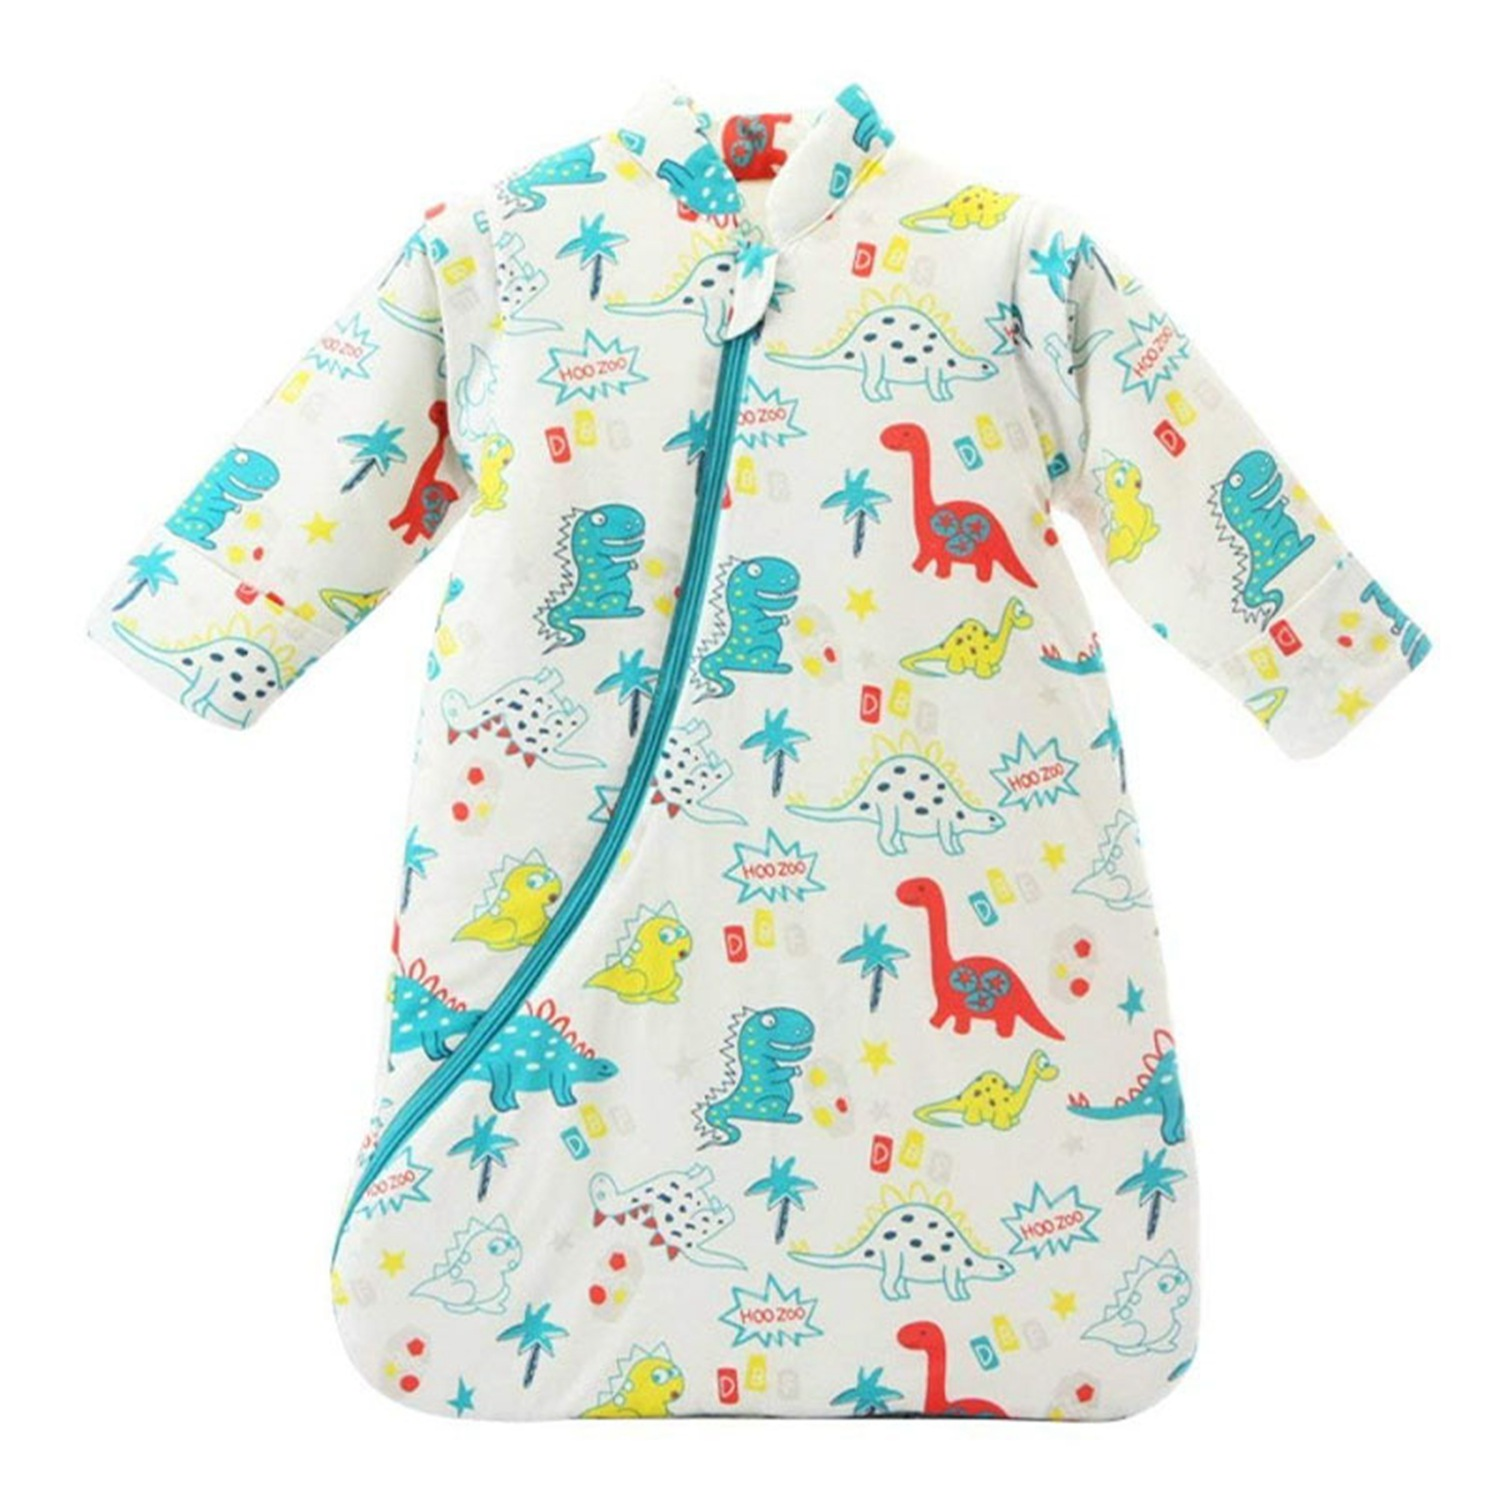 Unisex Baby Sleepsack Wearable Blanket Cotton Sleeping Bag Long Sleeve Nest Nightgowns Thickened Winter Dinosaur/3.5 Tog L